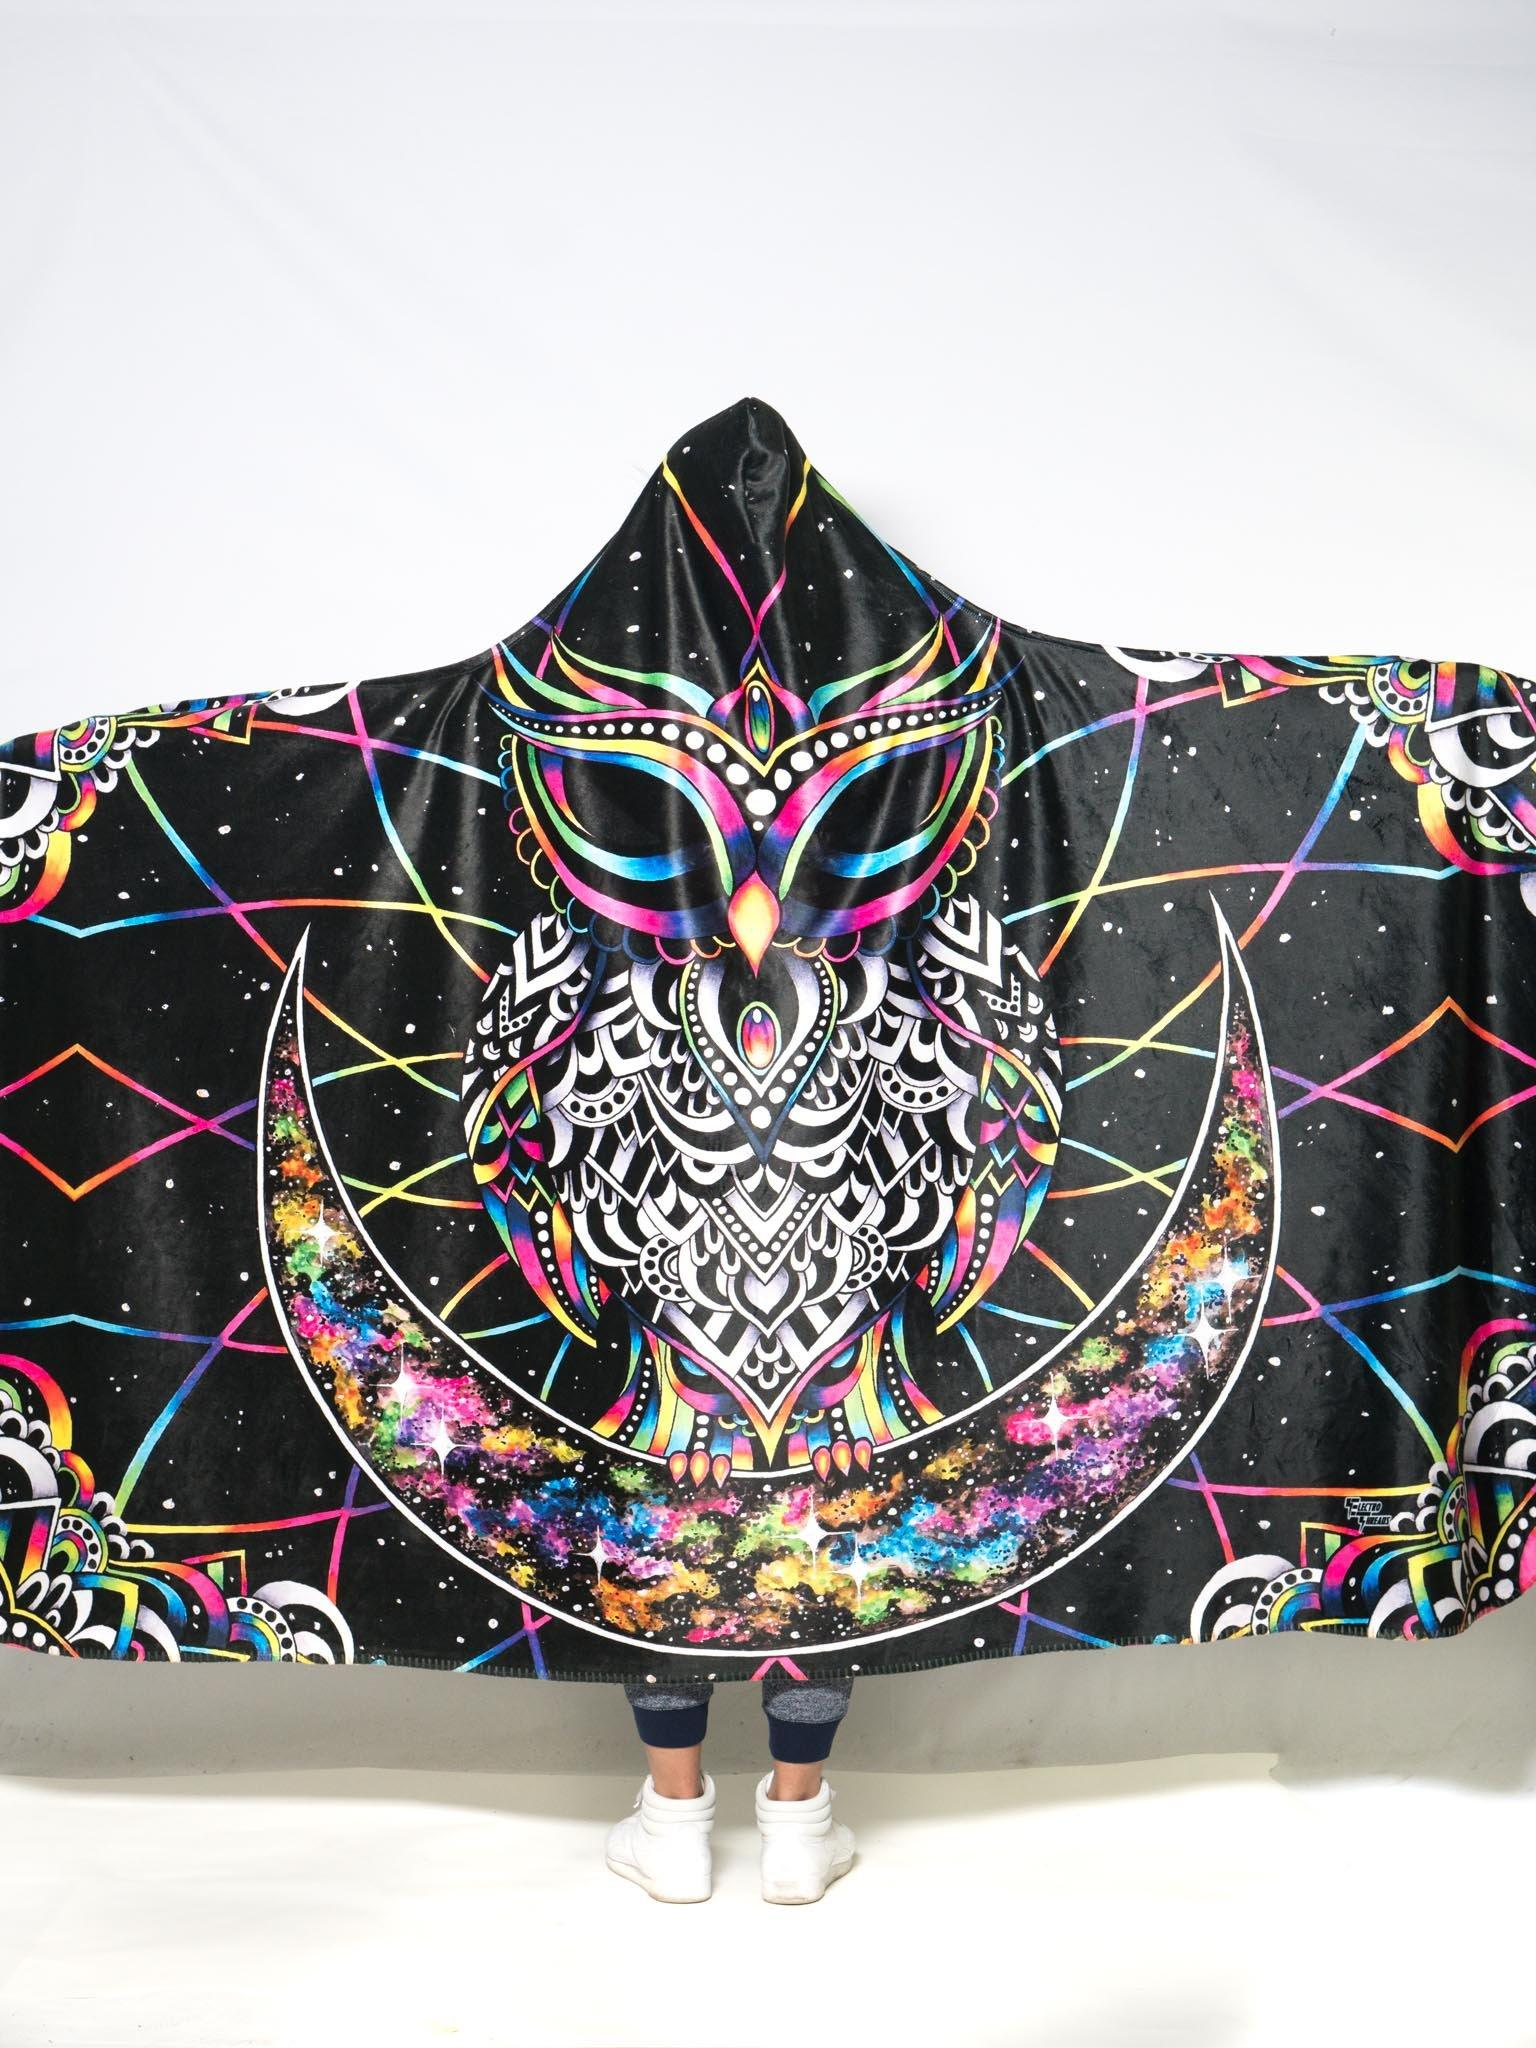 Electro Owl Hooded Blanket Hooded Blanket Electro Threads